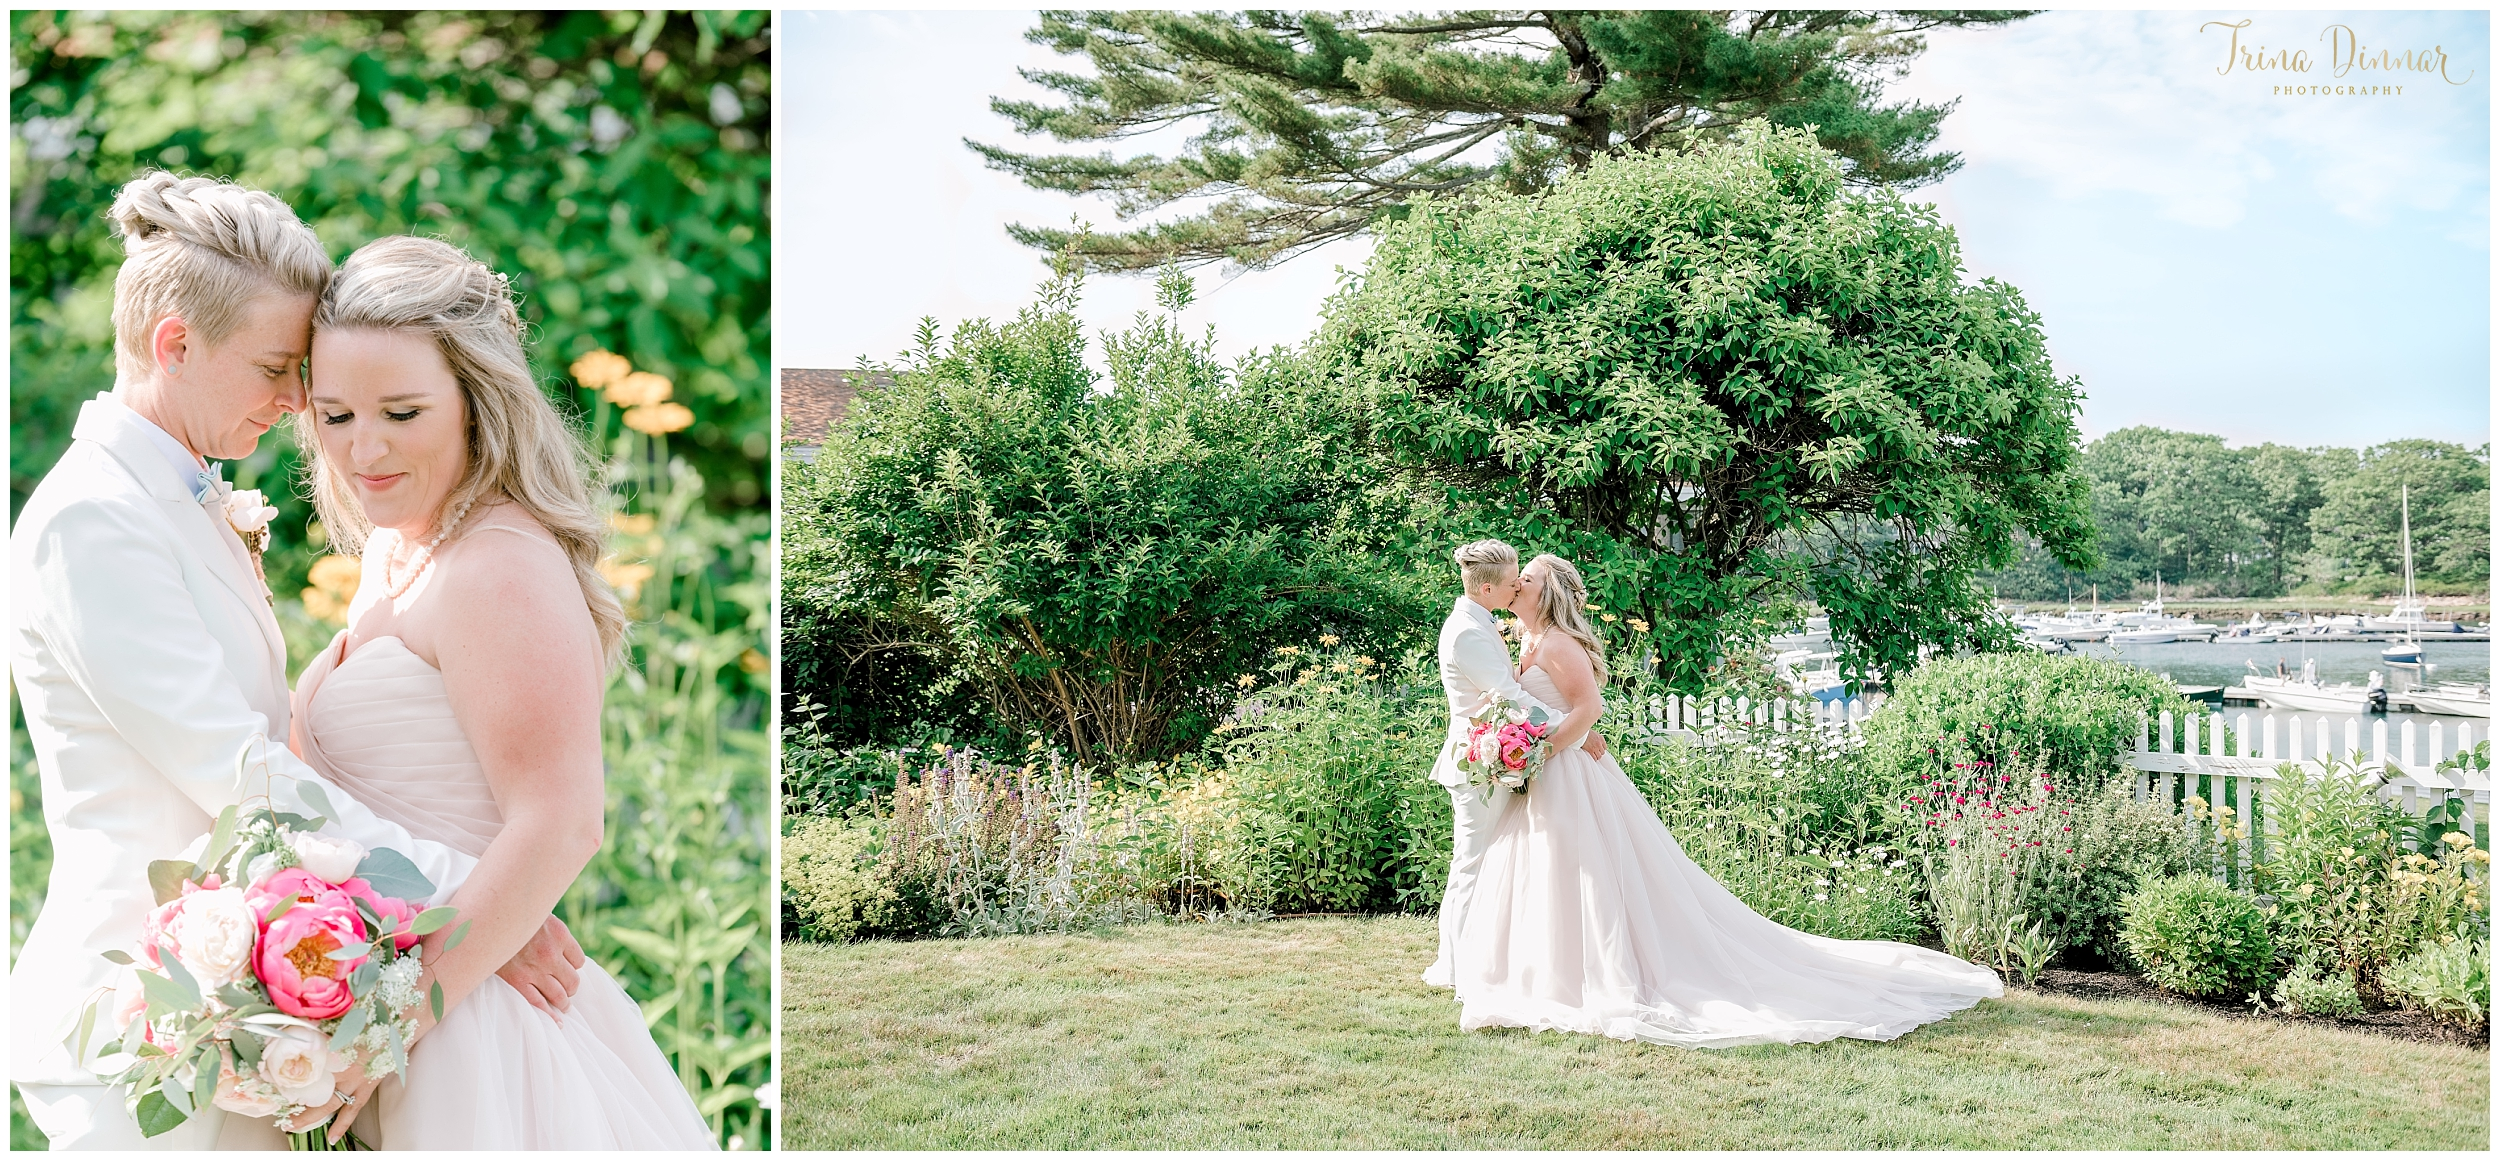 Elegant Same Sex Wedding in Maine